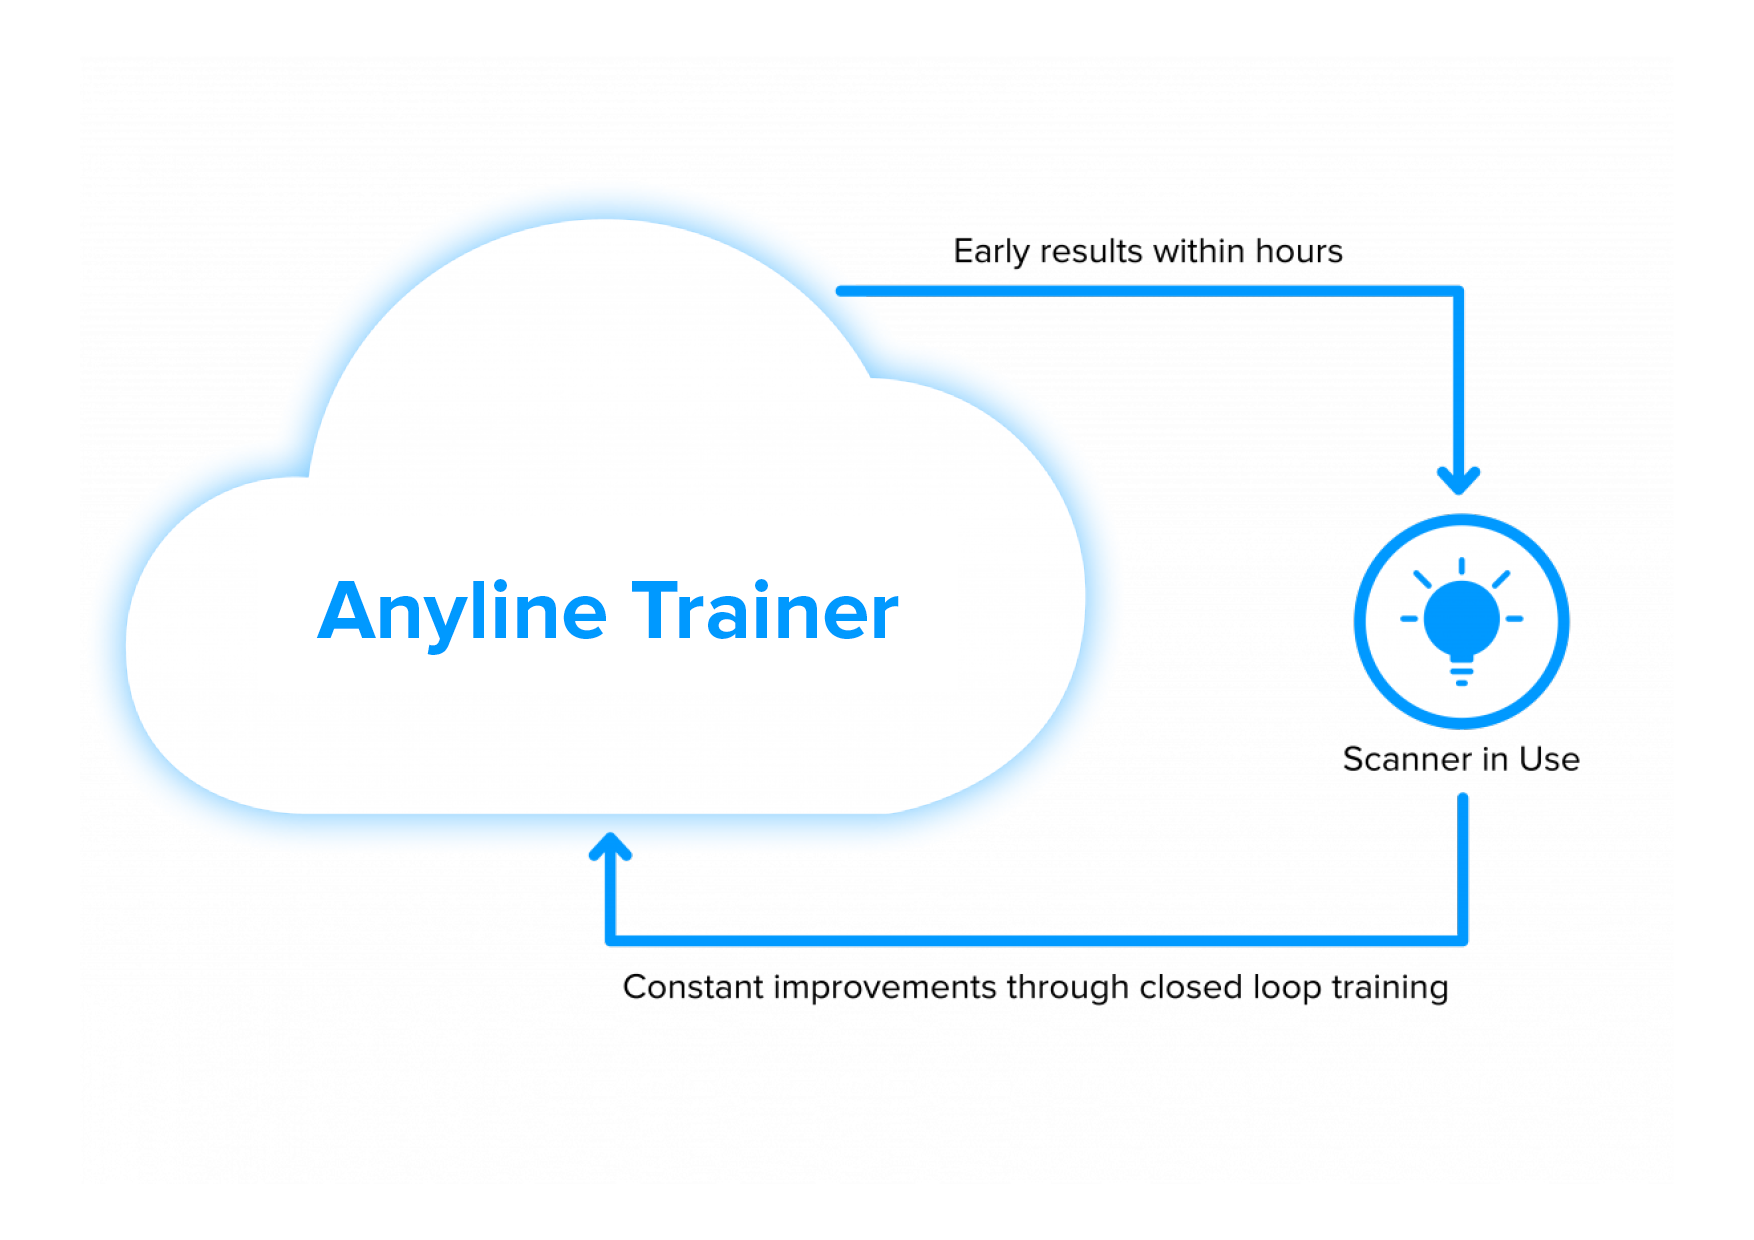 Anyline Trainer Graphic 2 - Custom Mobile Scanning Solutions